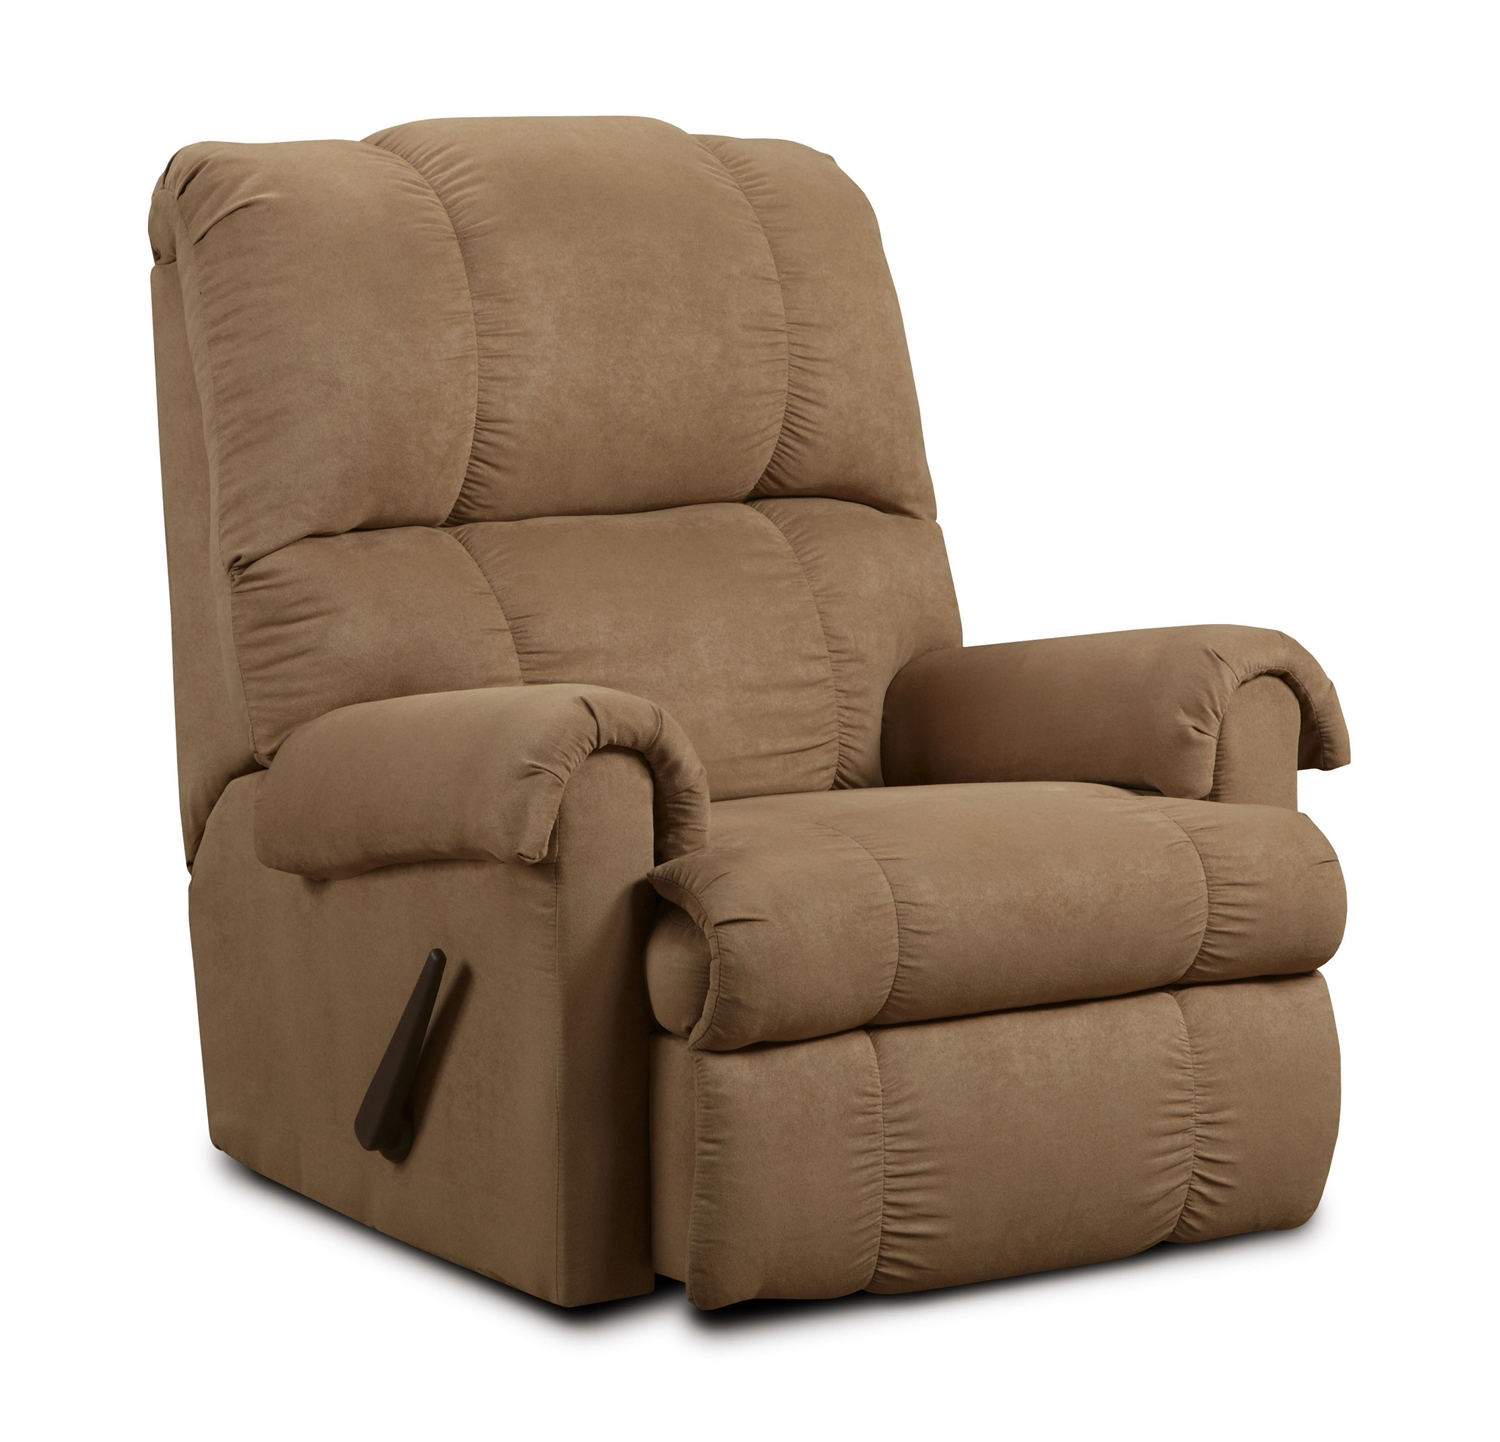 Rent American Wholesale Furniture Rocker Recliner Flat Suede Victory Lane Taupe Recliners